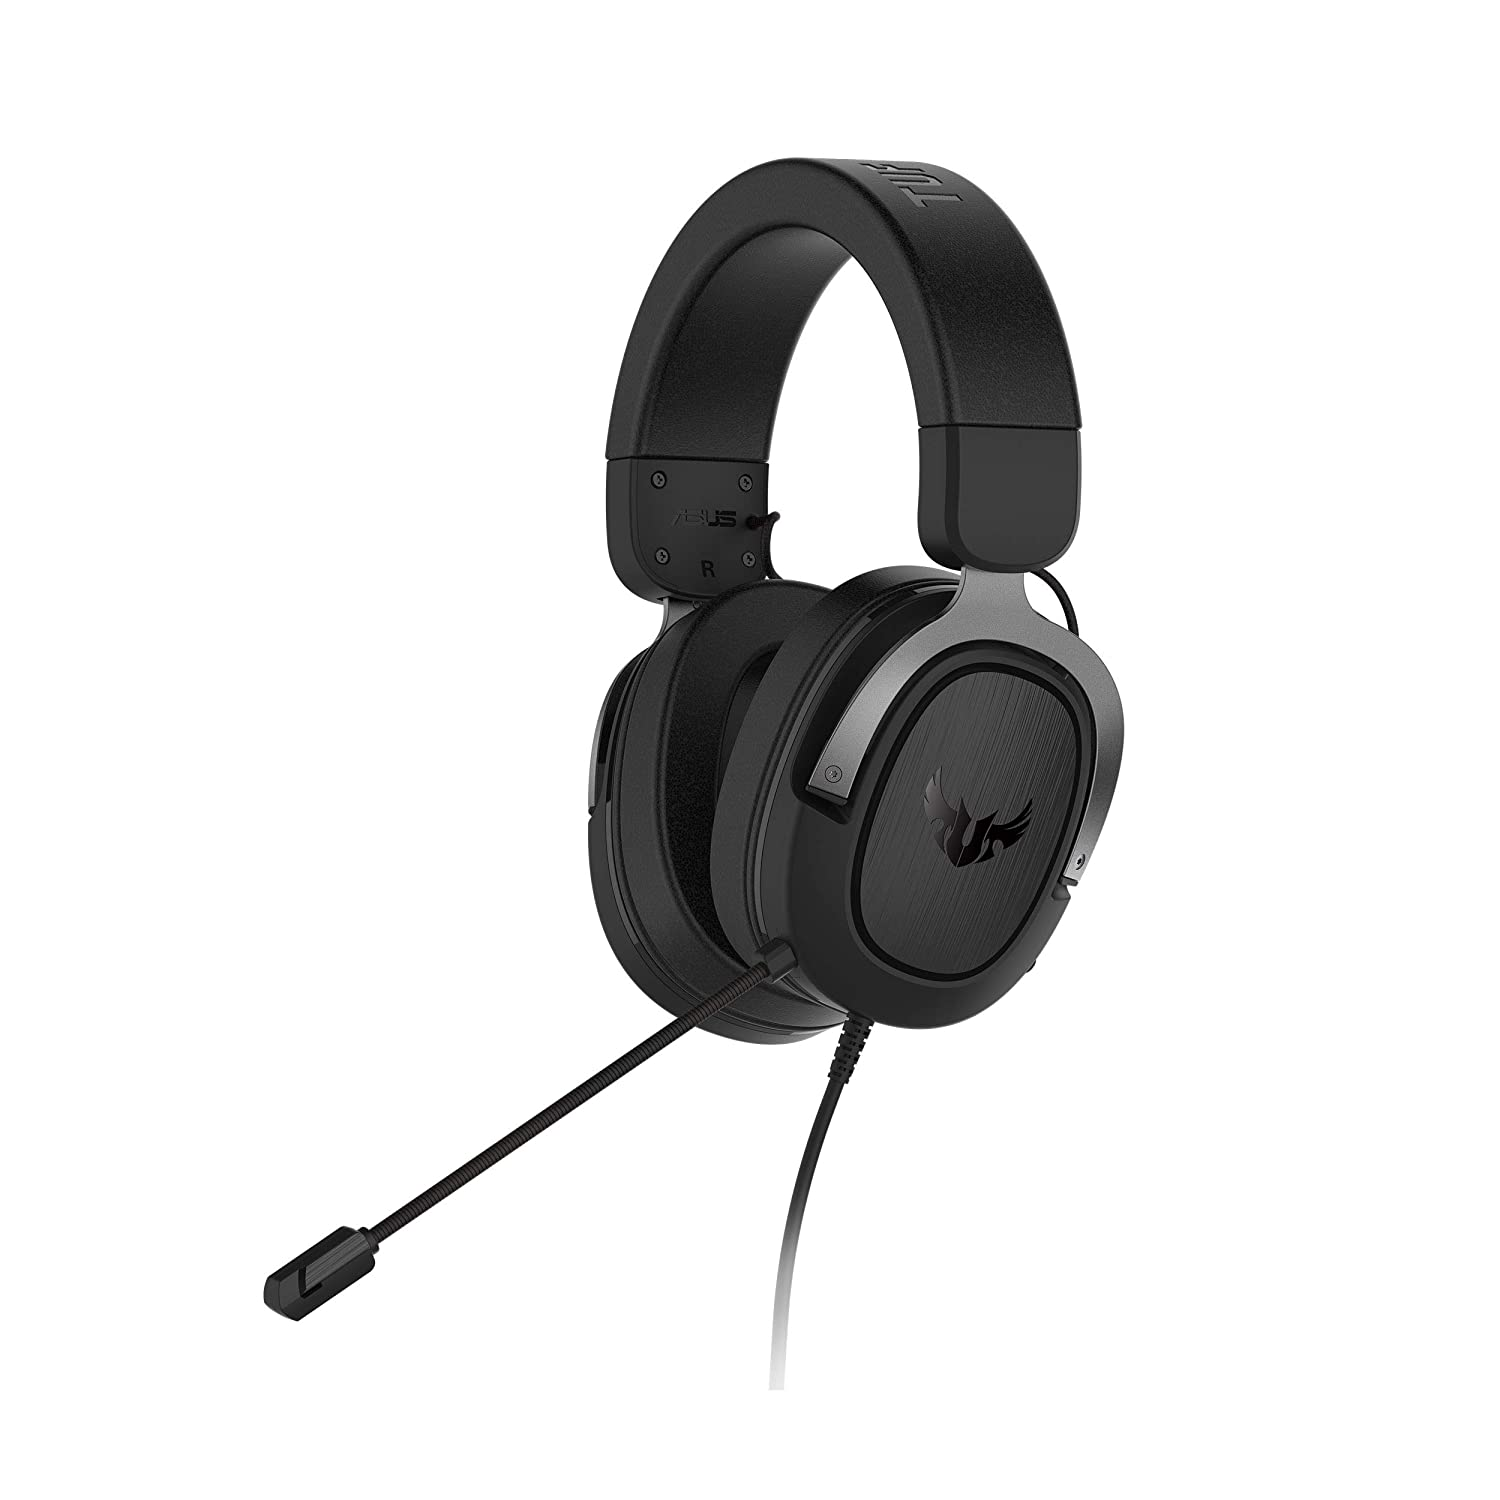 ASUS TUF Gaming H3 Gaming Headset for PC, PS4, Xbox One and Nintendo Switch, Featuring 7.1 Surround Sound, deep bass, Lightweight Design, Fast-Cooling Ear Cushions - Silver - Buy ASUS TUF Gaming